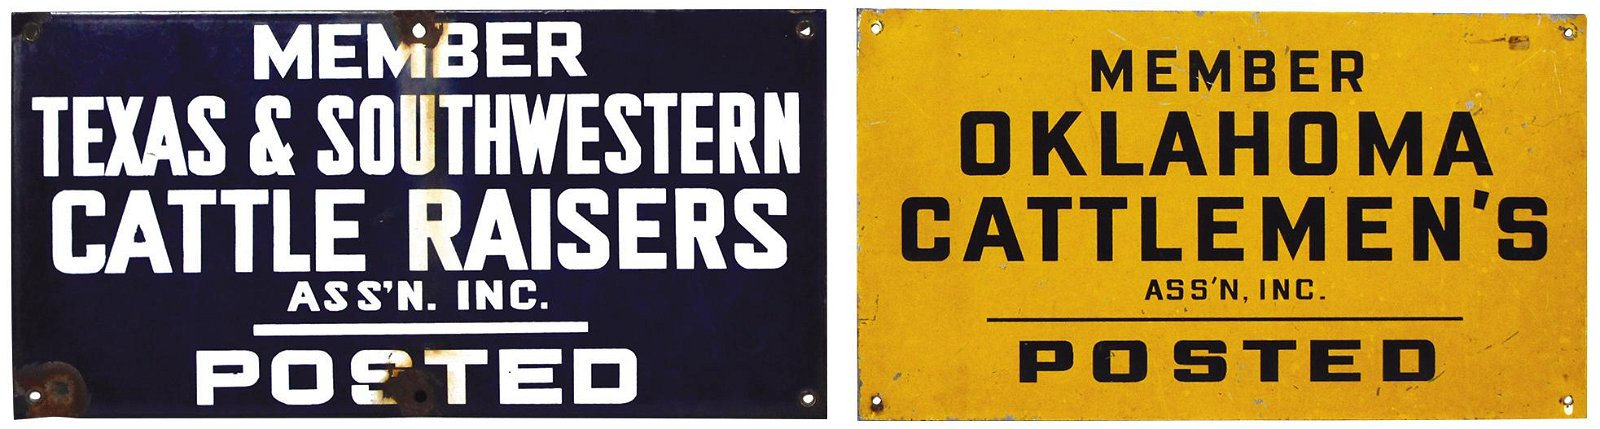 """Farming Cattleman Signs (2), Texas Members """"Posted"""""""